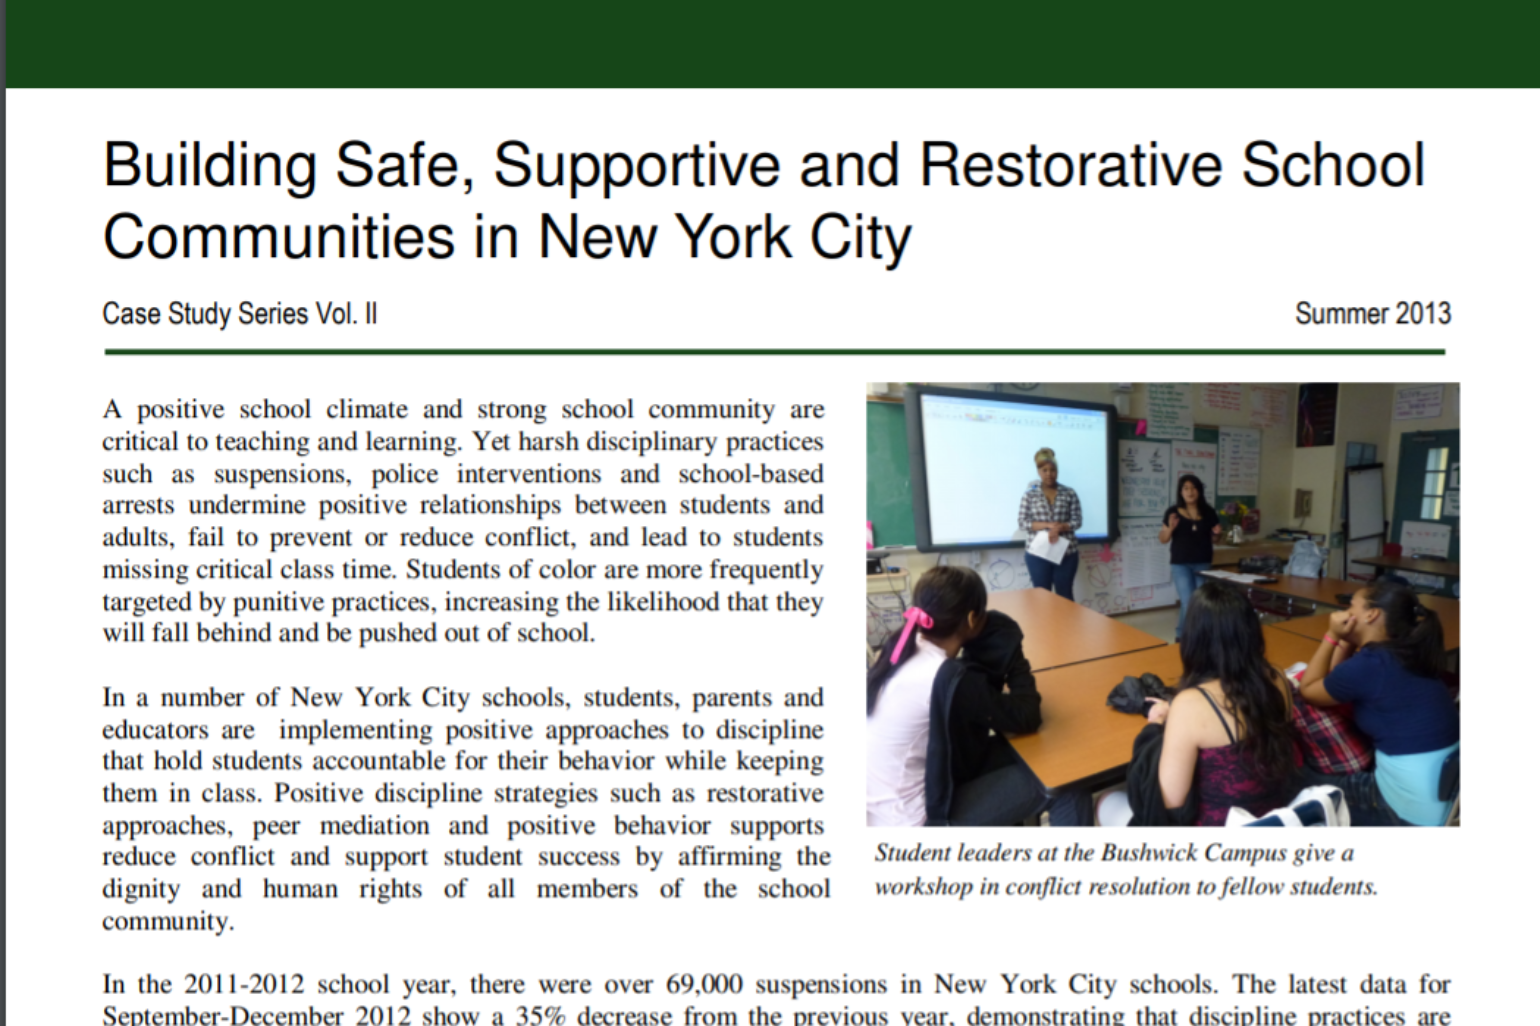 DSC NY – Building Safe, Supportive and Restorative School Communities in New York City, Vol. II